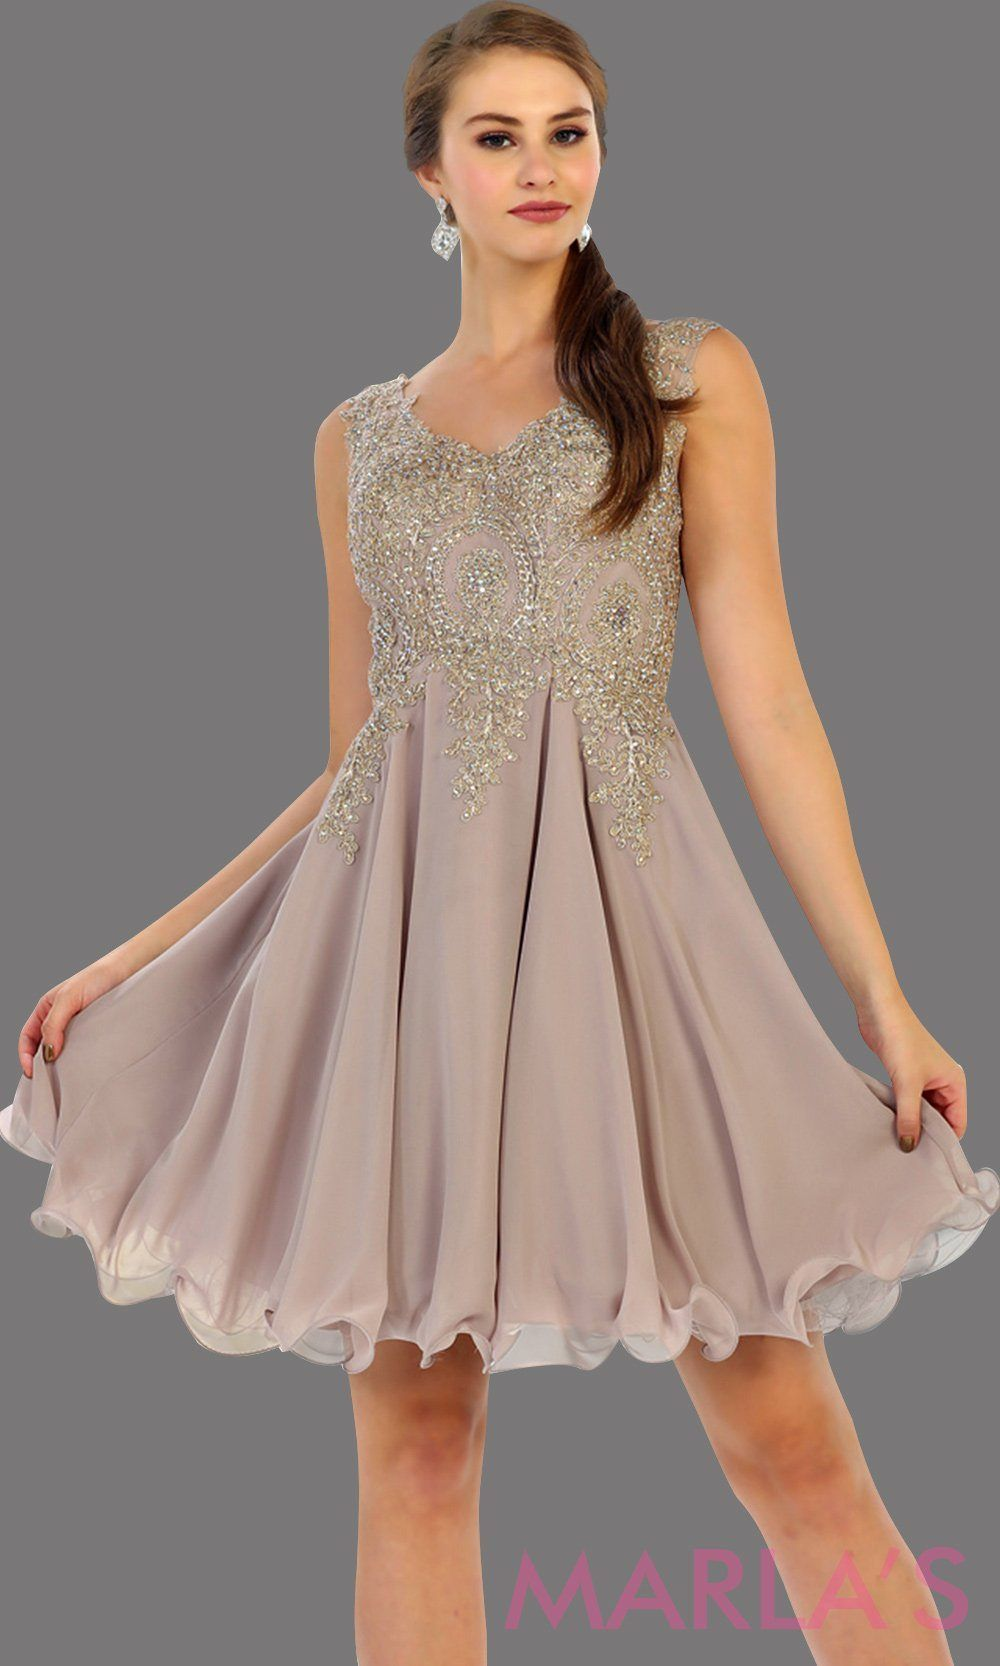 aebb10f6be4 Short flowy mocha dress with gold lace detail on the bodice. This is a  perfect taupe grade 8 graduation dress